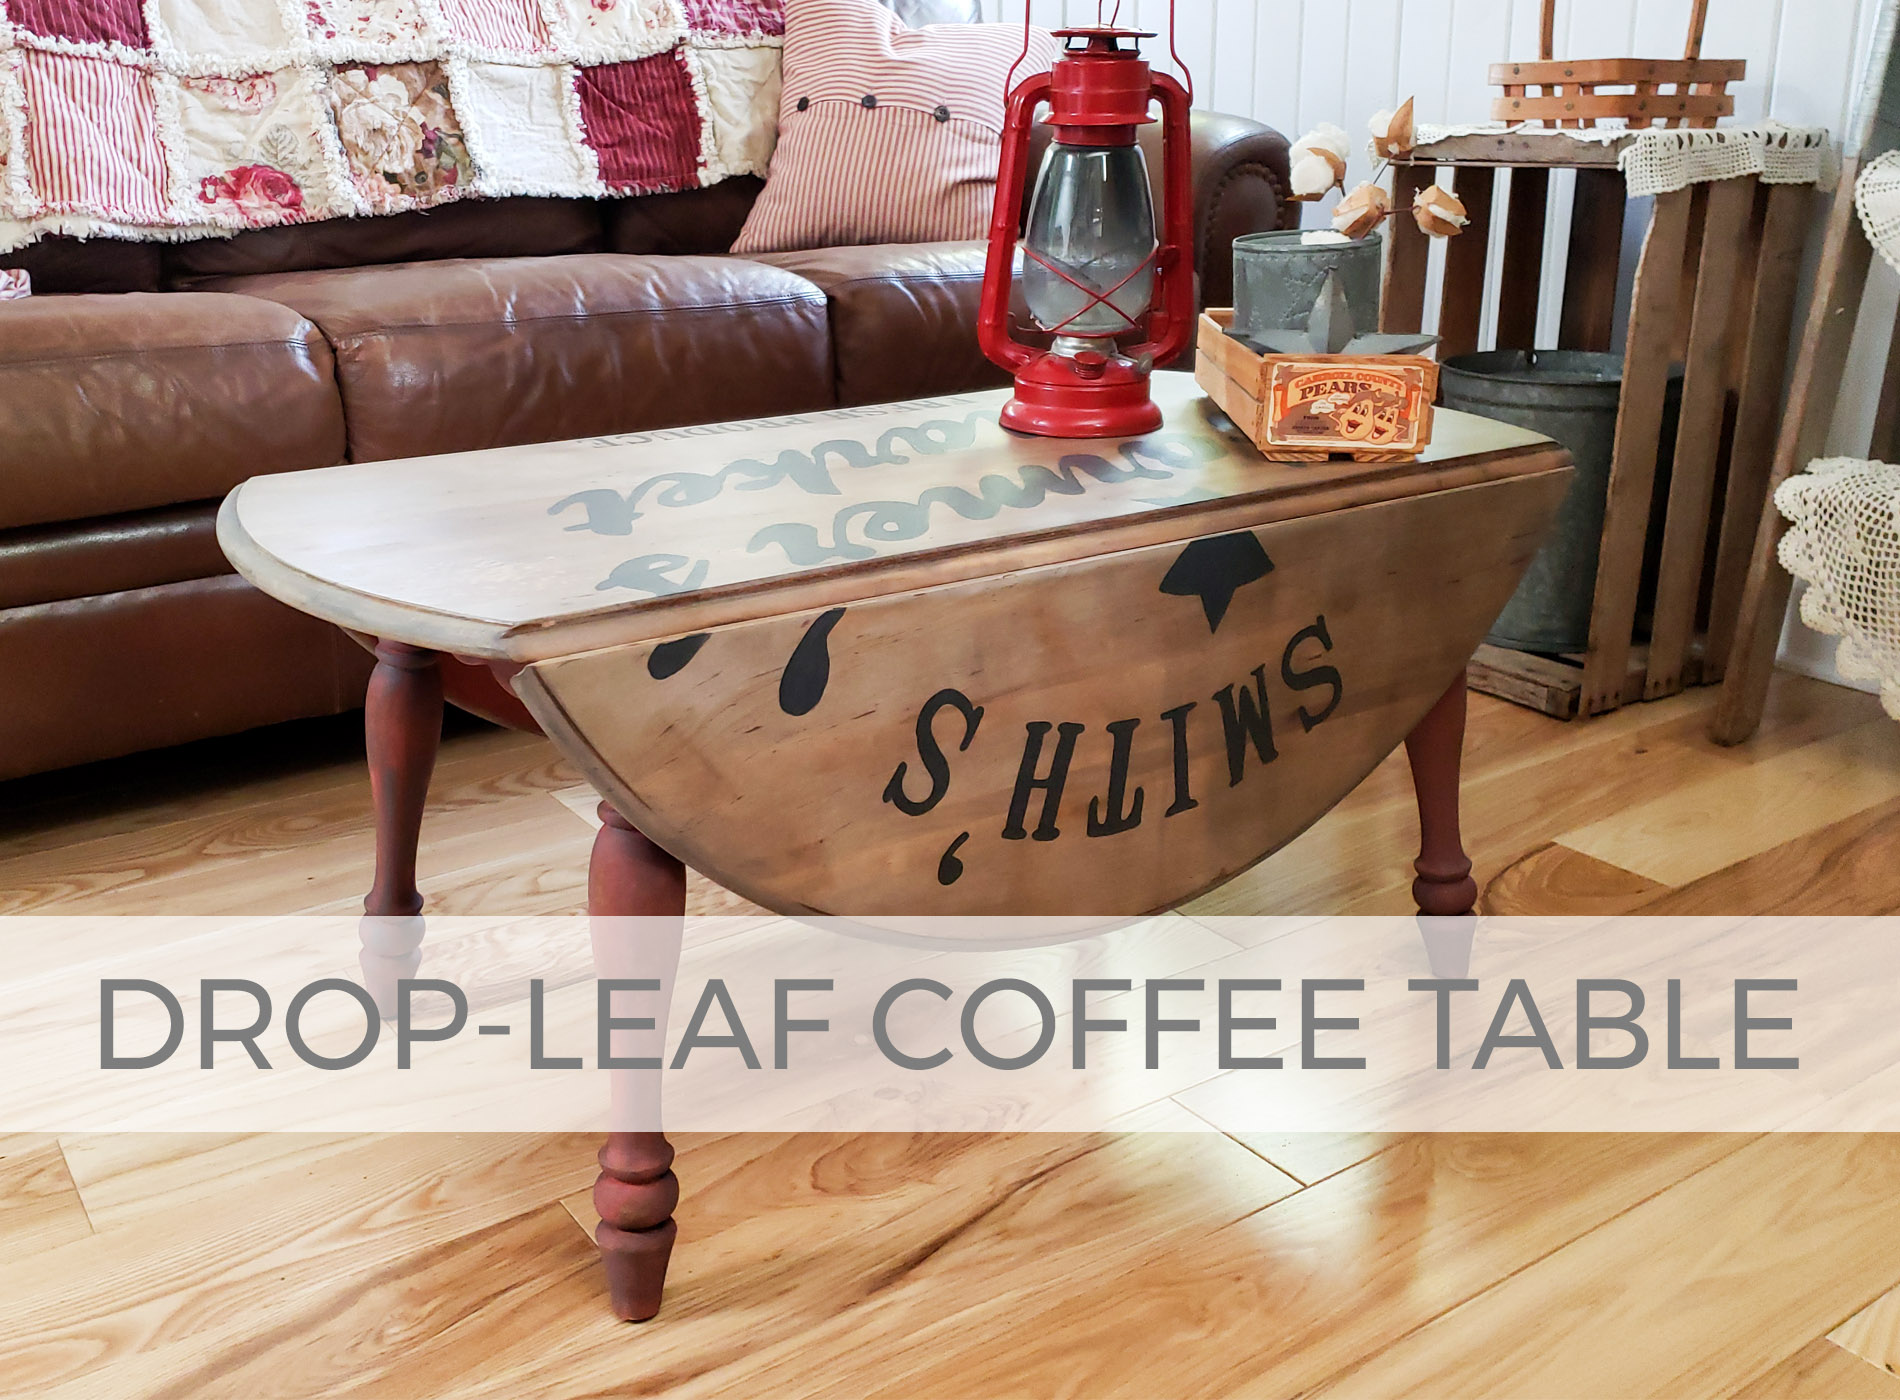 Drop-Leaf Coffee Table by Larissa of Prodigal Pieces | prodigalpieces.com #prodigalpieces